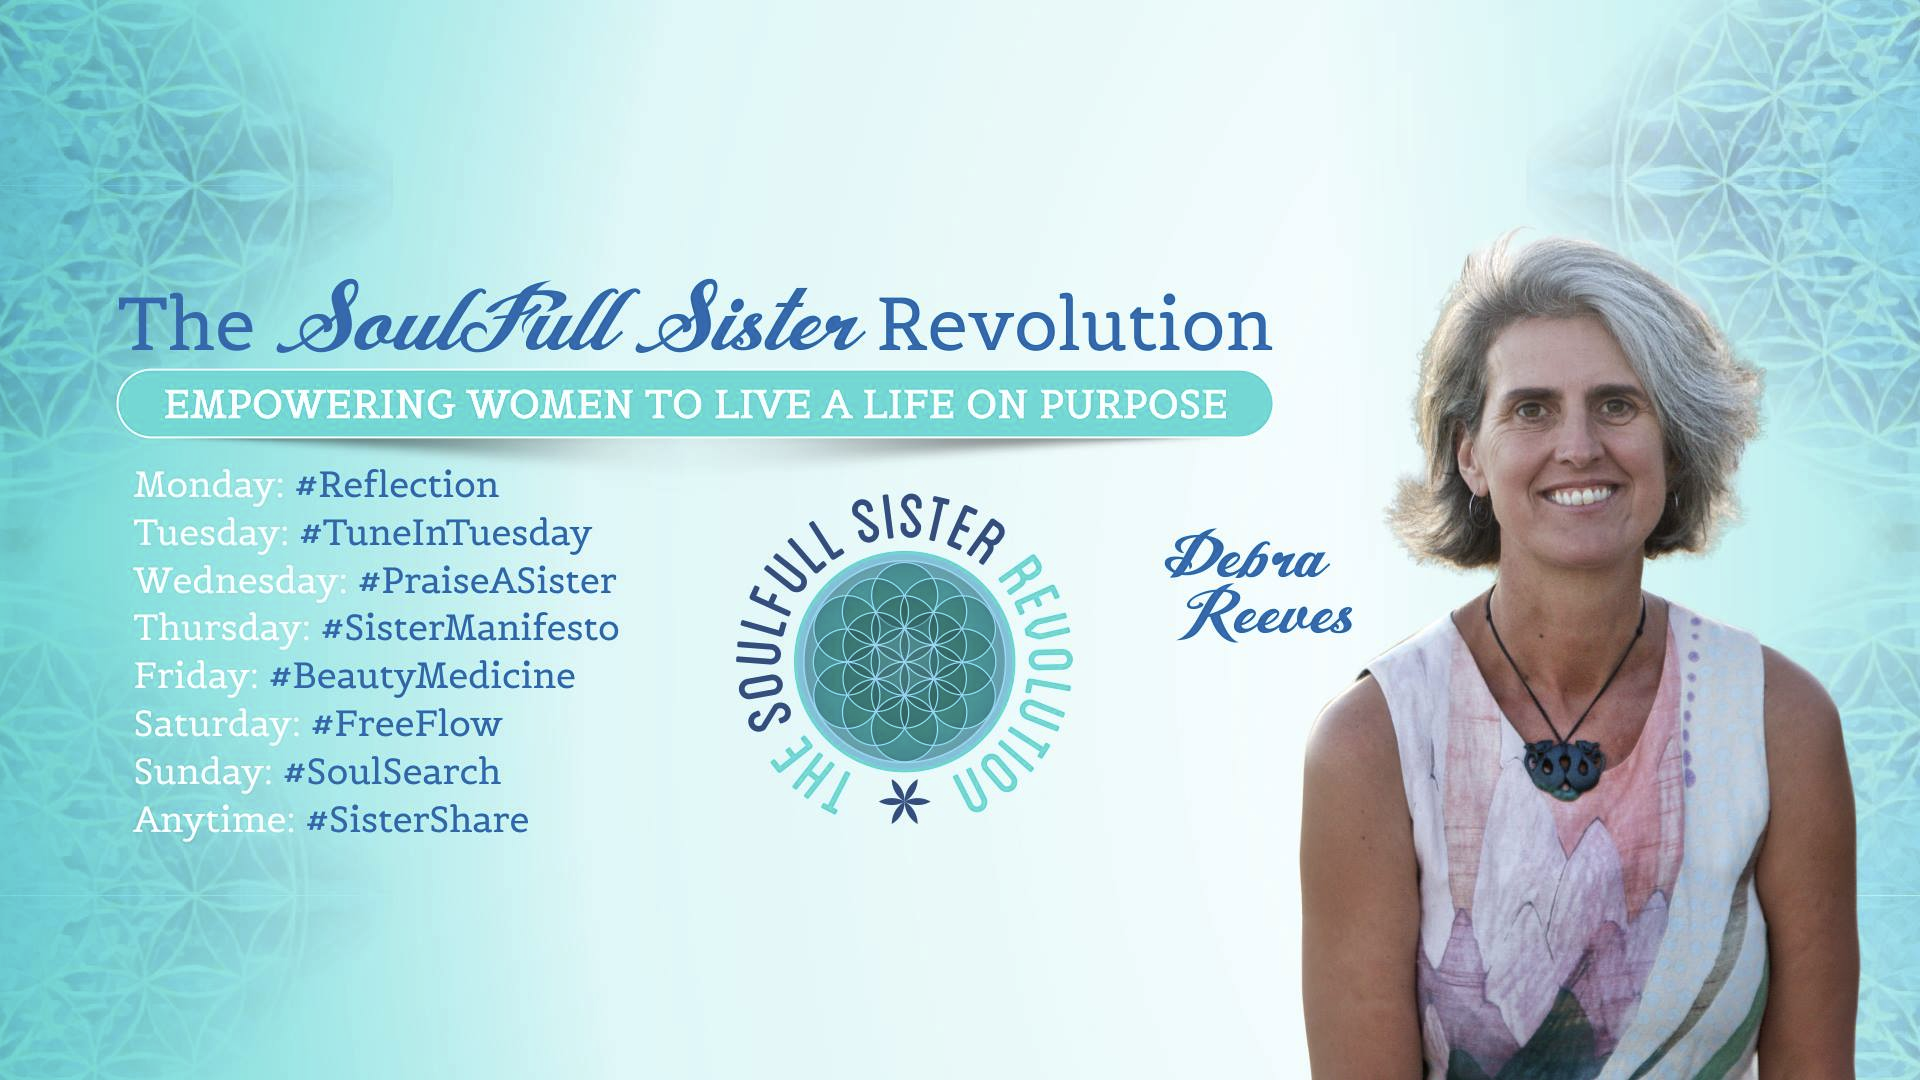 The SoulFull Sister Revolution